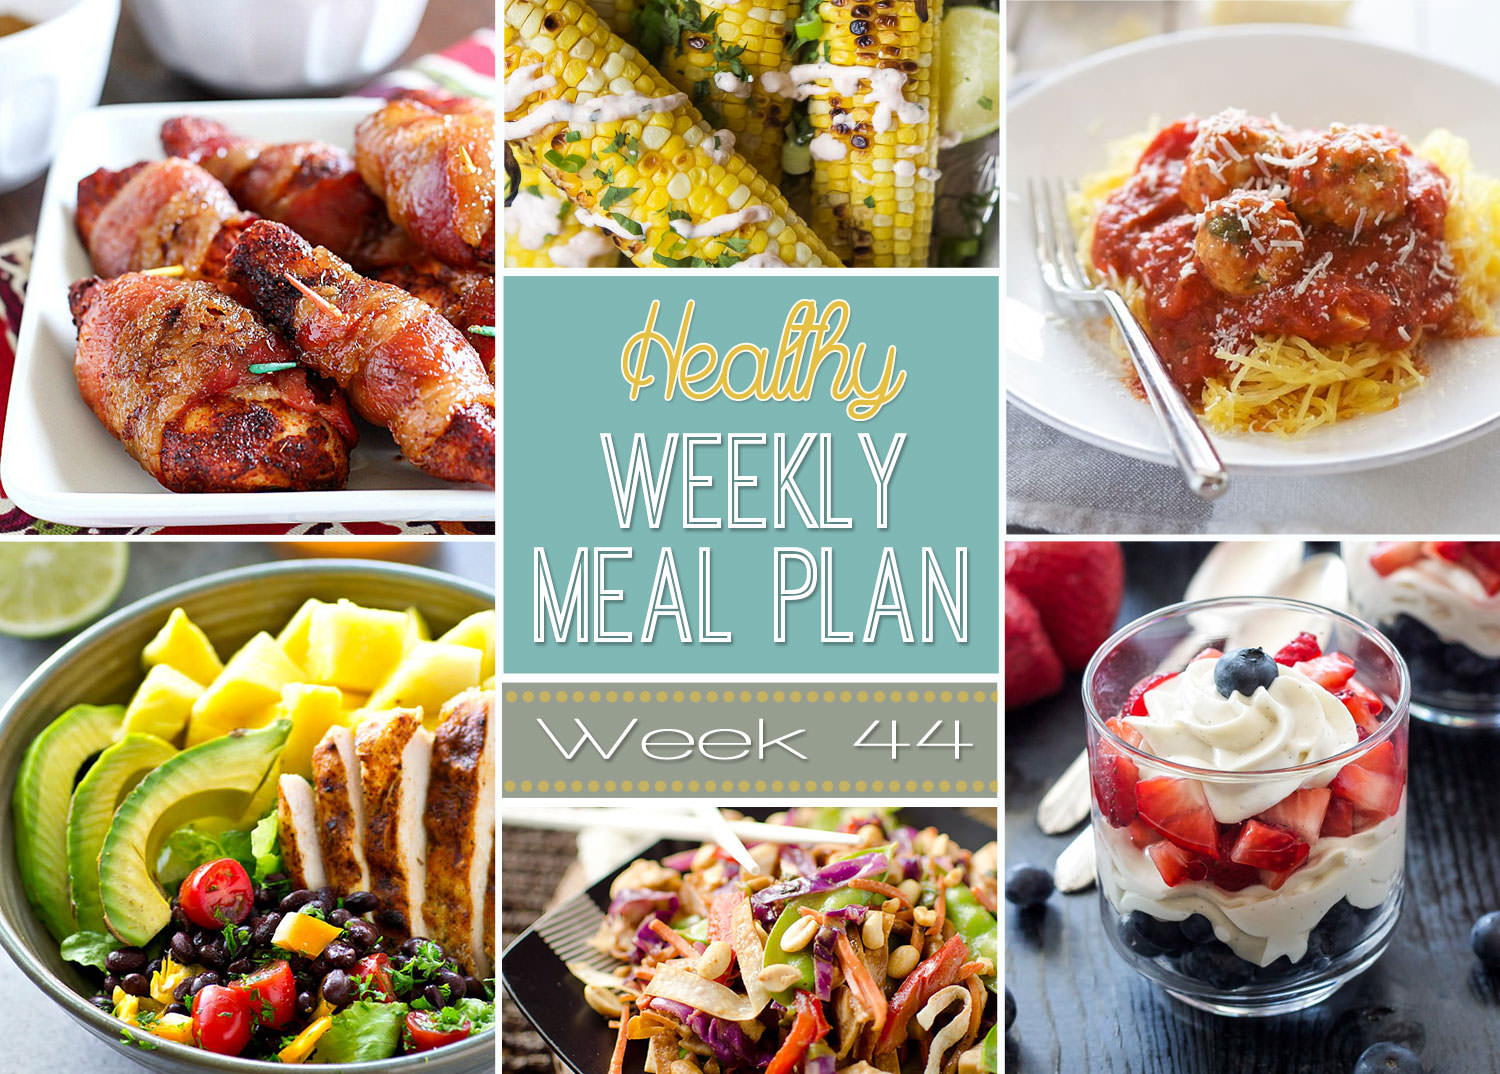 custom meal plan bundles - HD 1500×1074